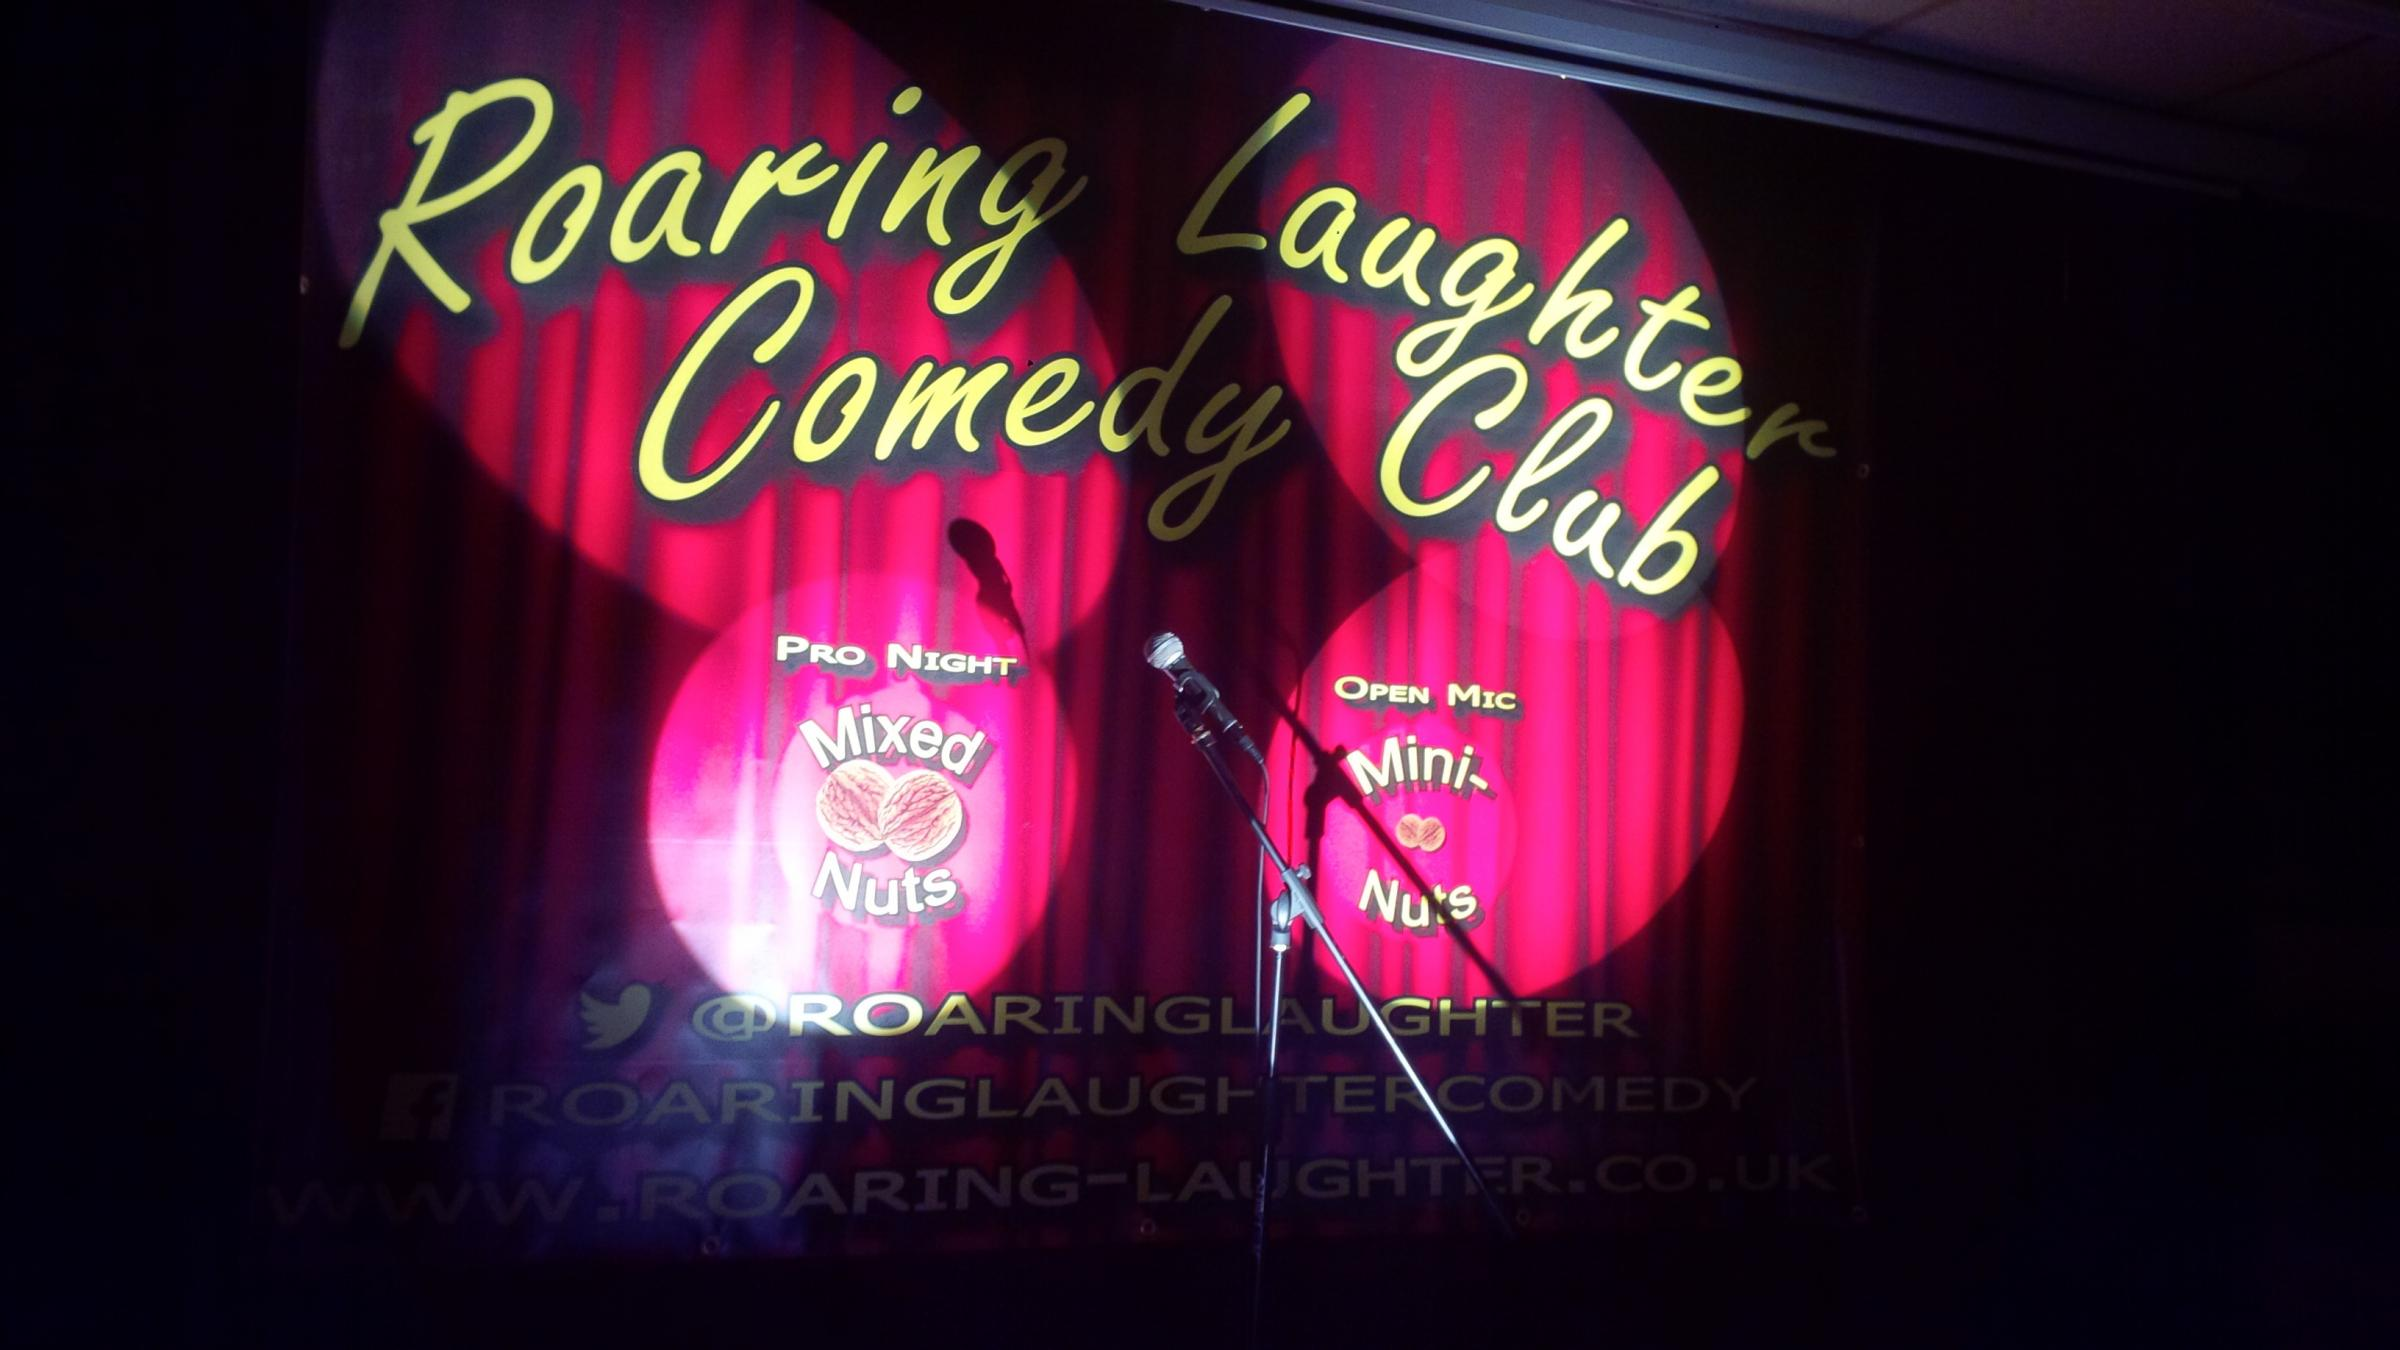 Roaring Laughter Comedy Club back at Wincham PArk